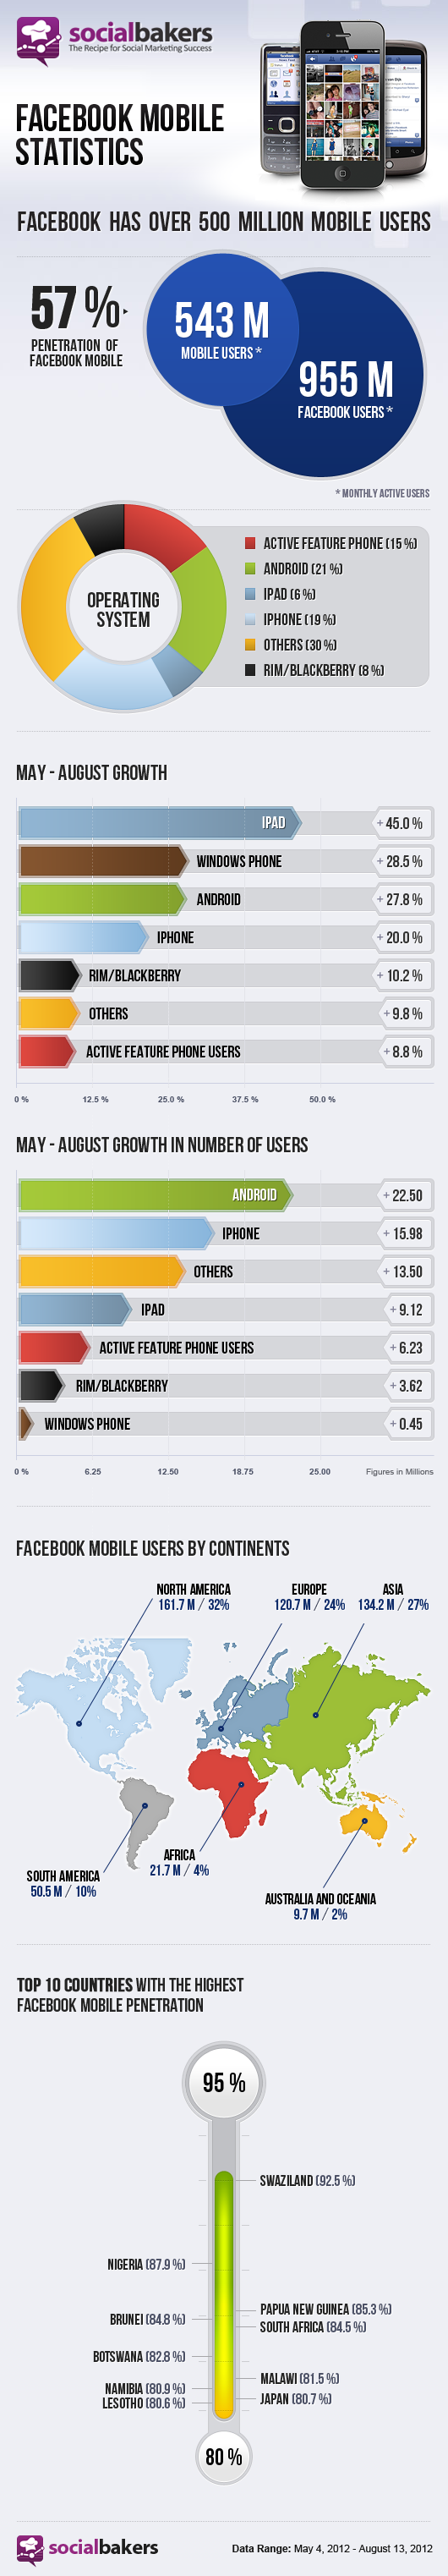 Facebook Mobile Hits 543 Million Users [Infographic] - Socialbakers